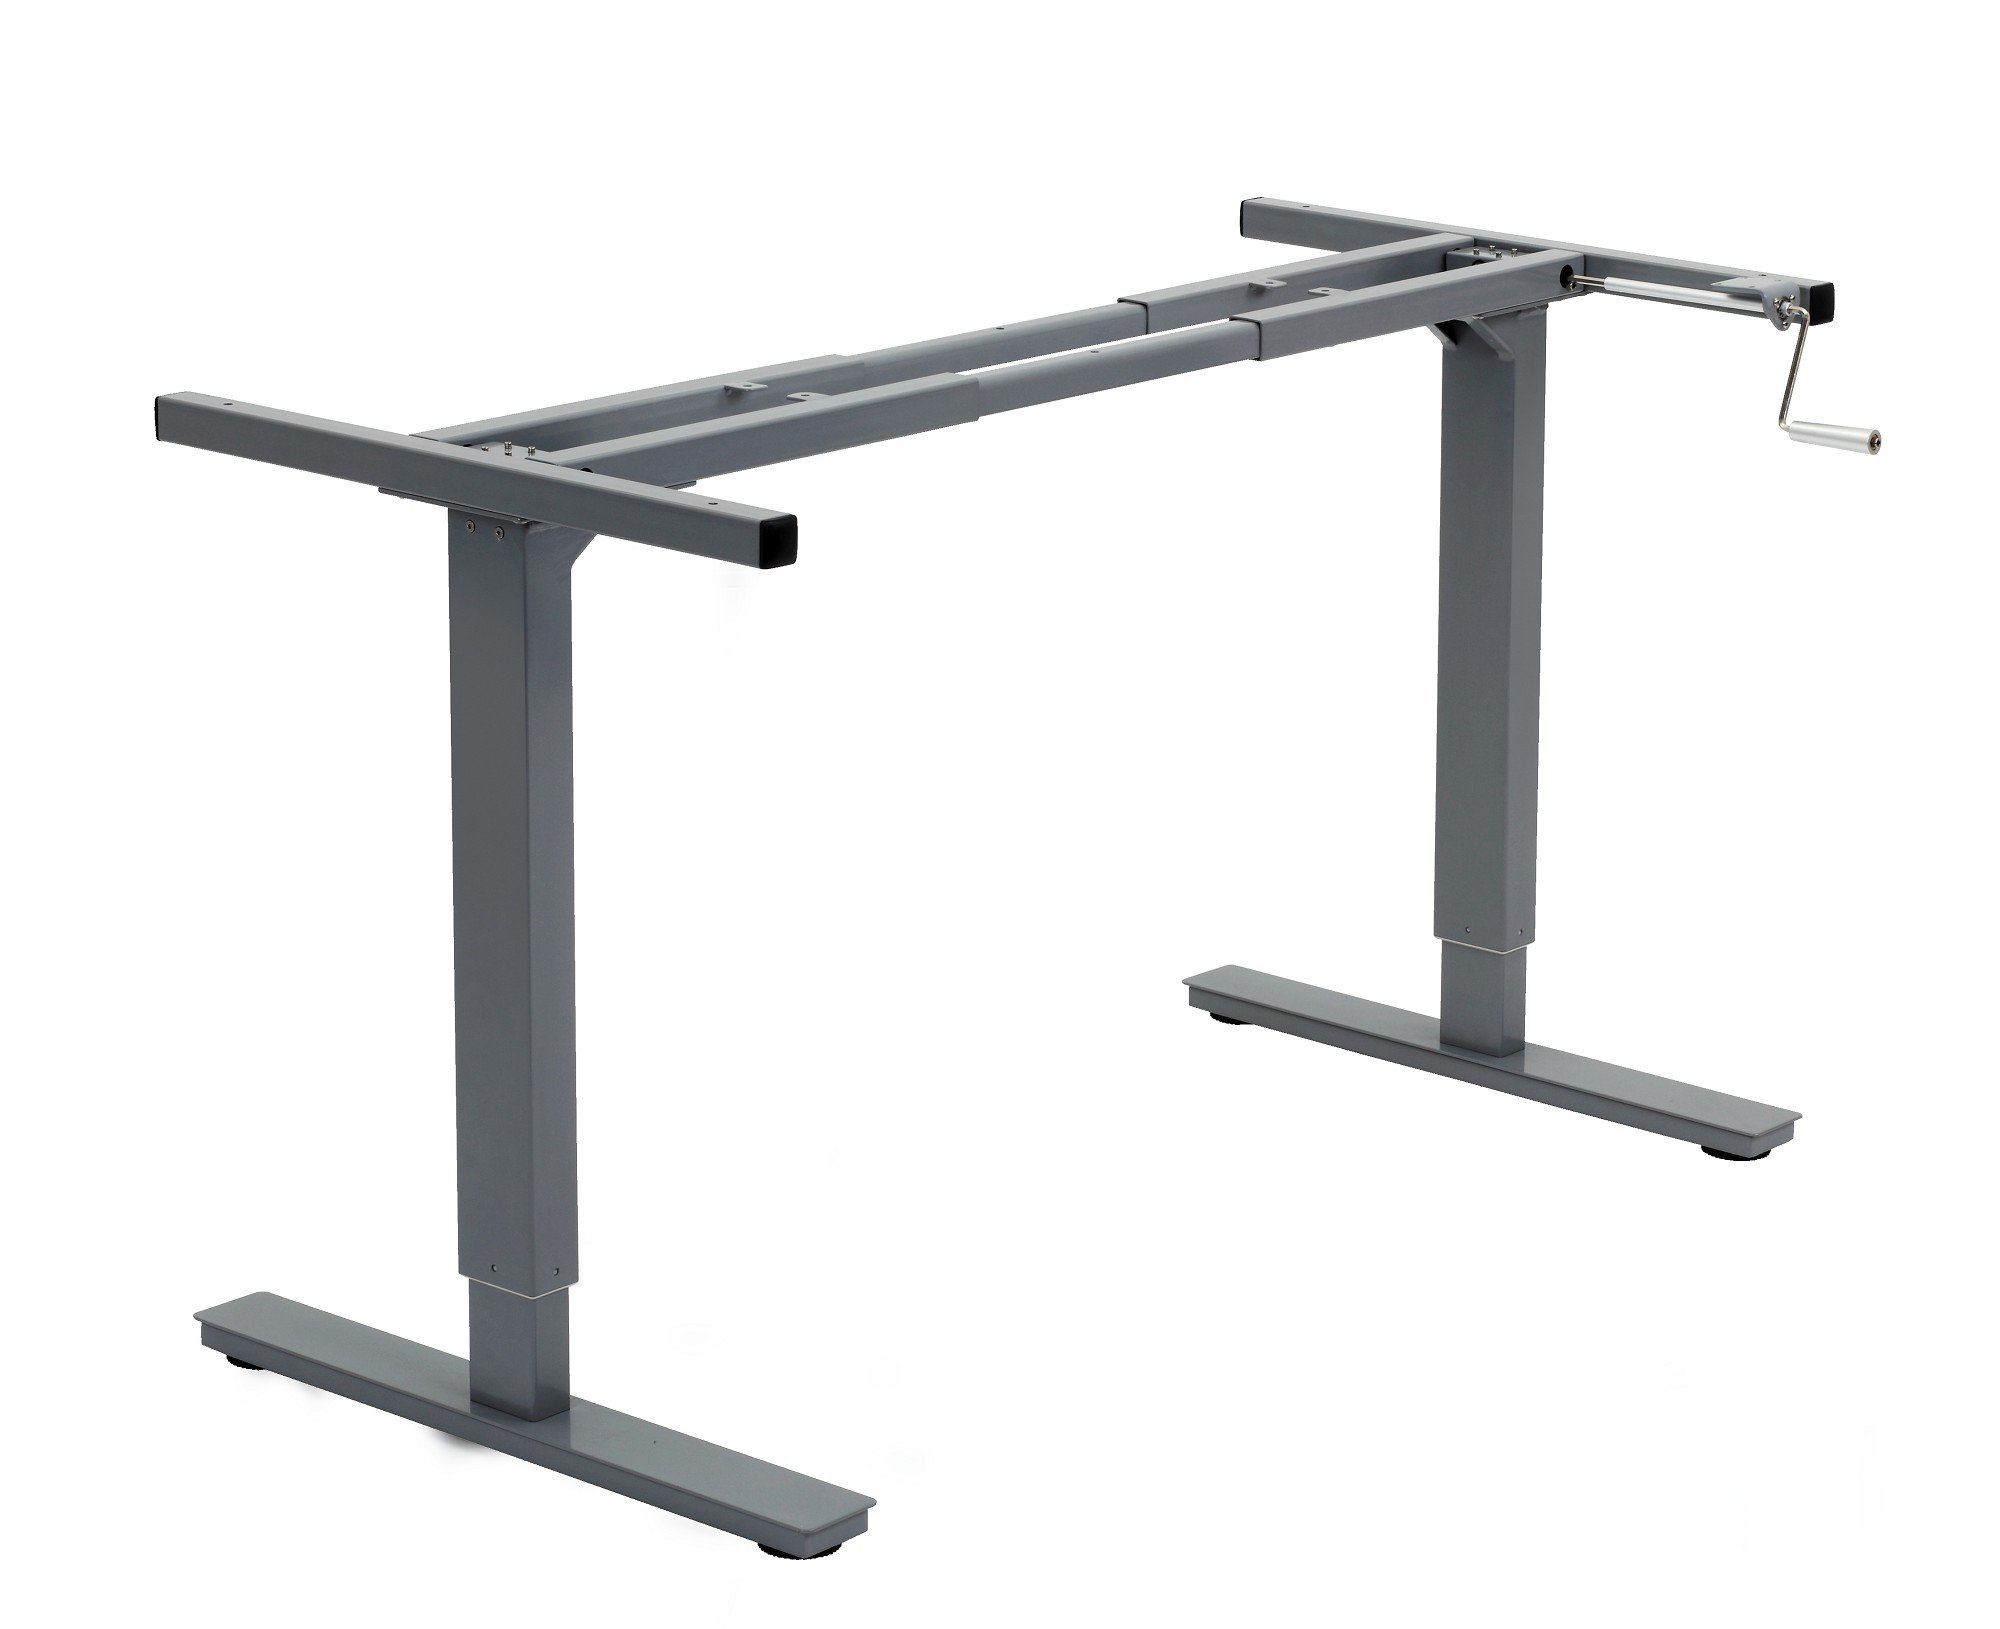 Canary Products ABC256GR Height Adjustable Crank Desk Frame, Tabletop Not Included, 45 Inch Max, Grey